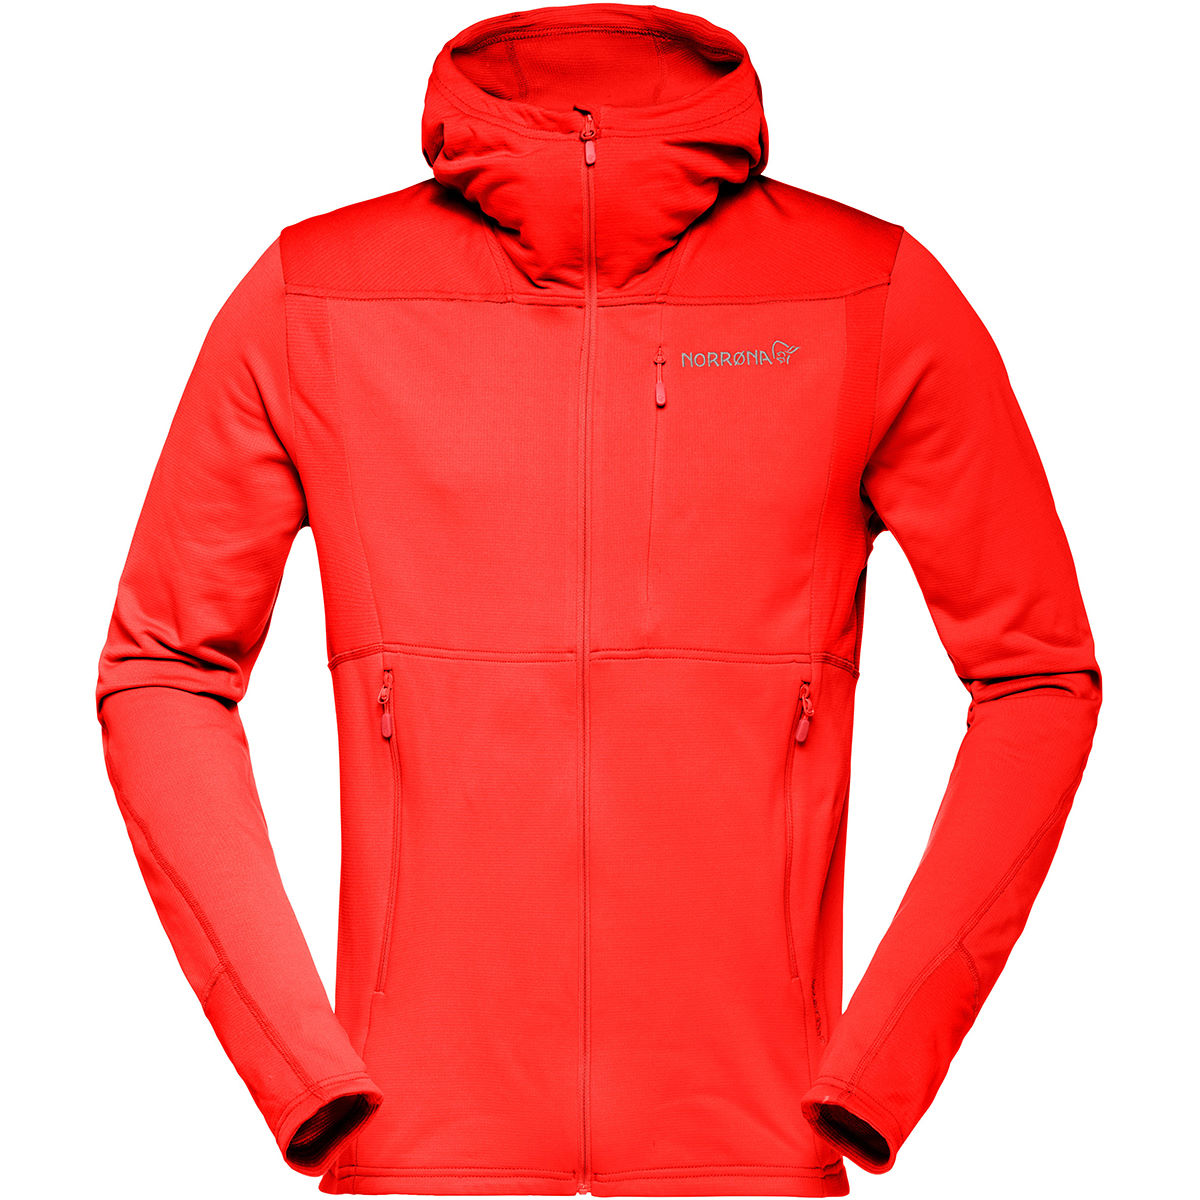 Norrøna Norrøna falketind Warm1 Stretch Zip Hoodie   Hoodies